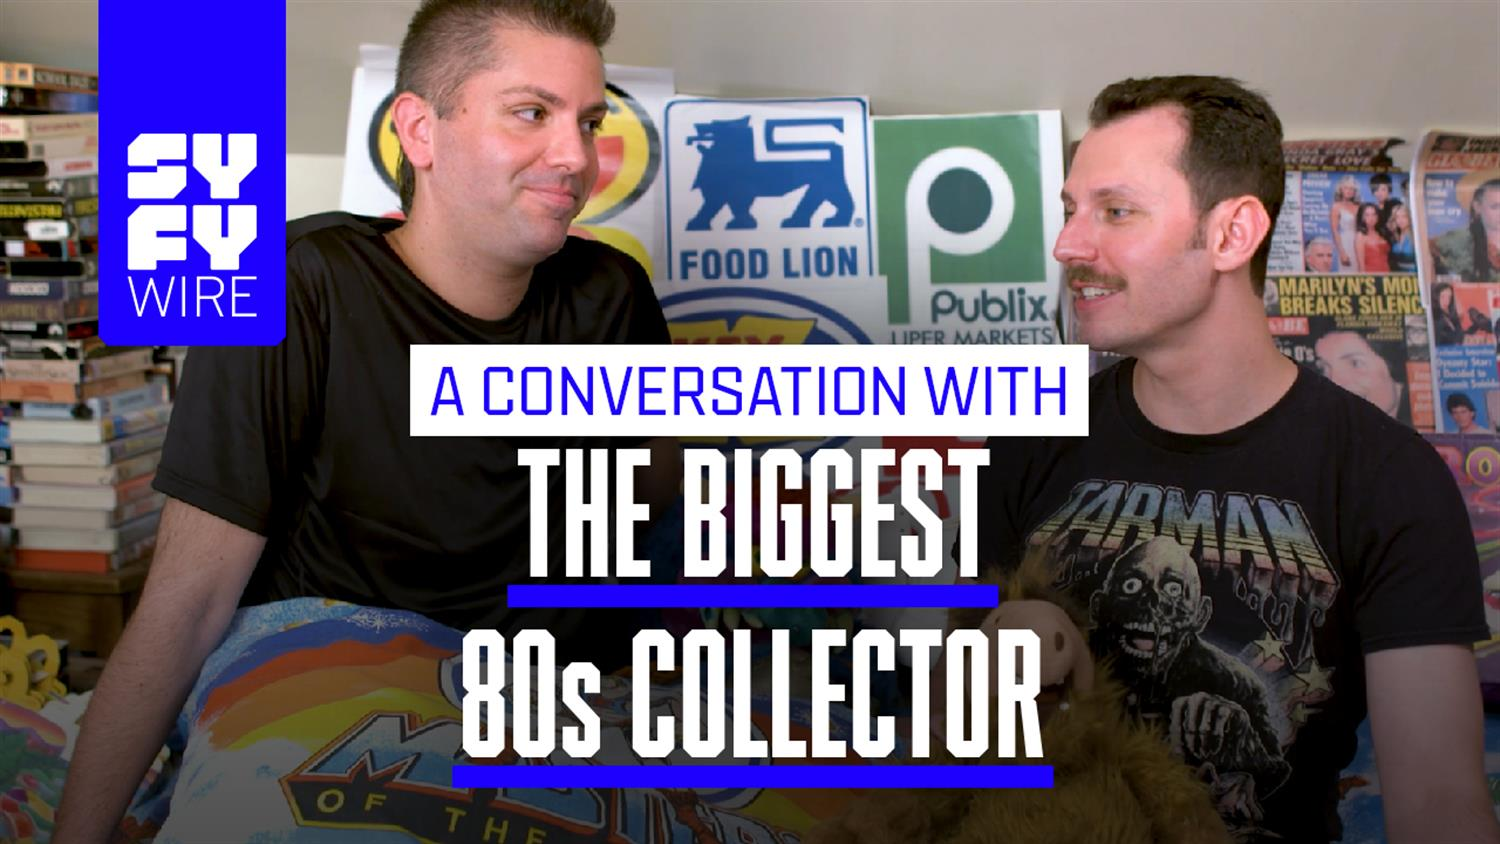 This Guy Owns The World's Biggest '80s Collection